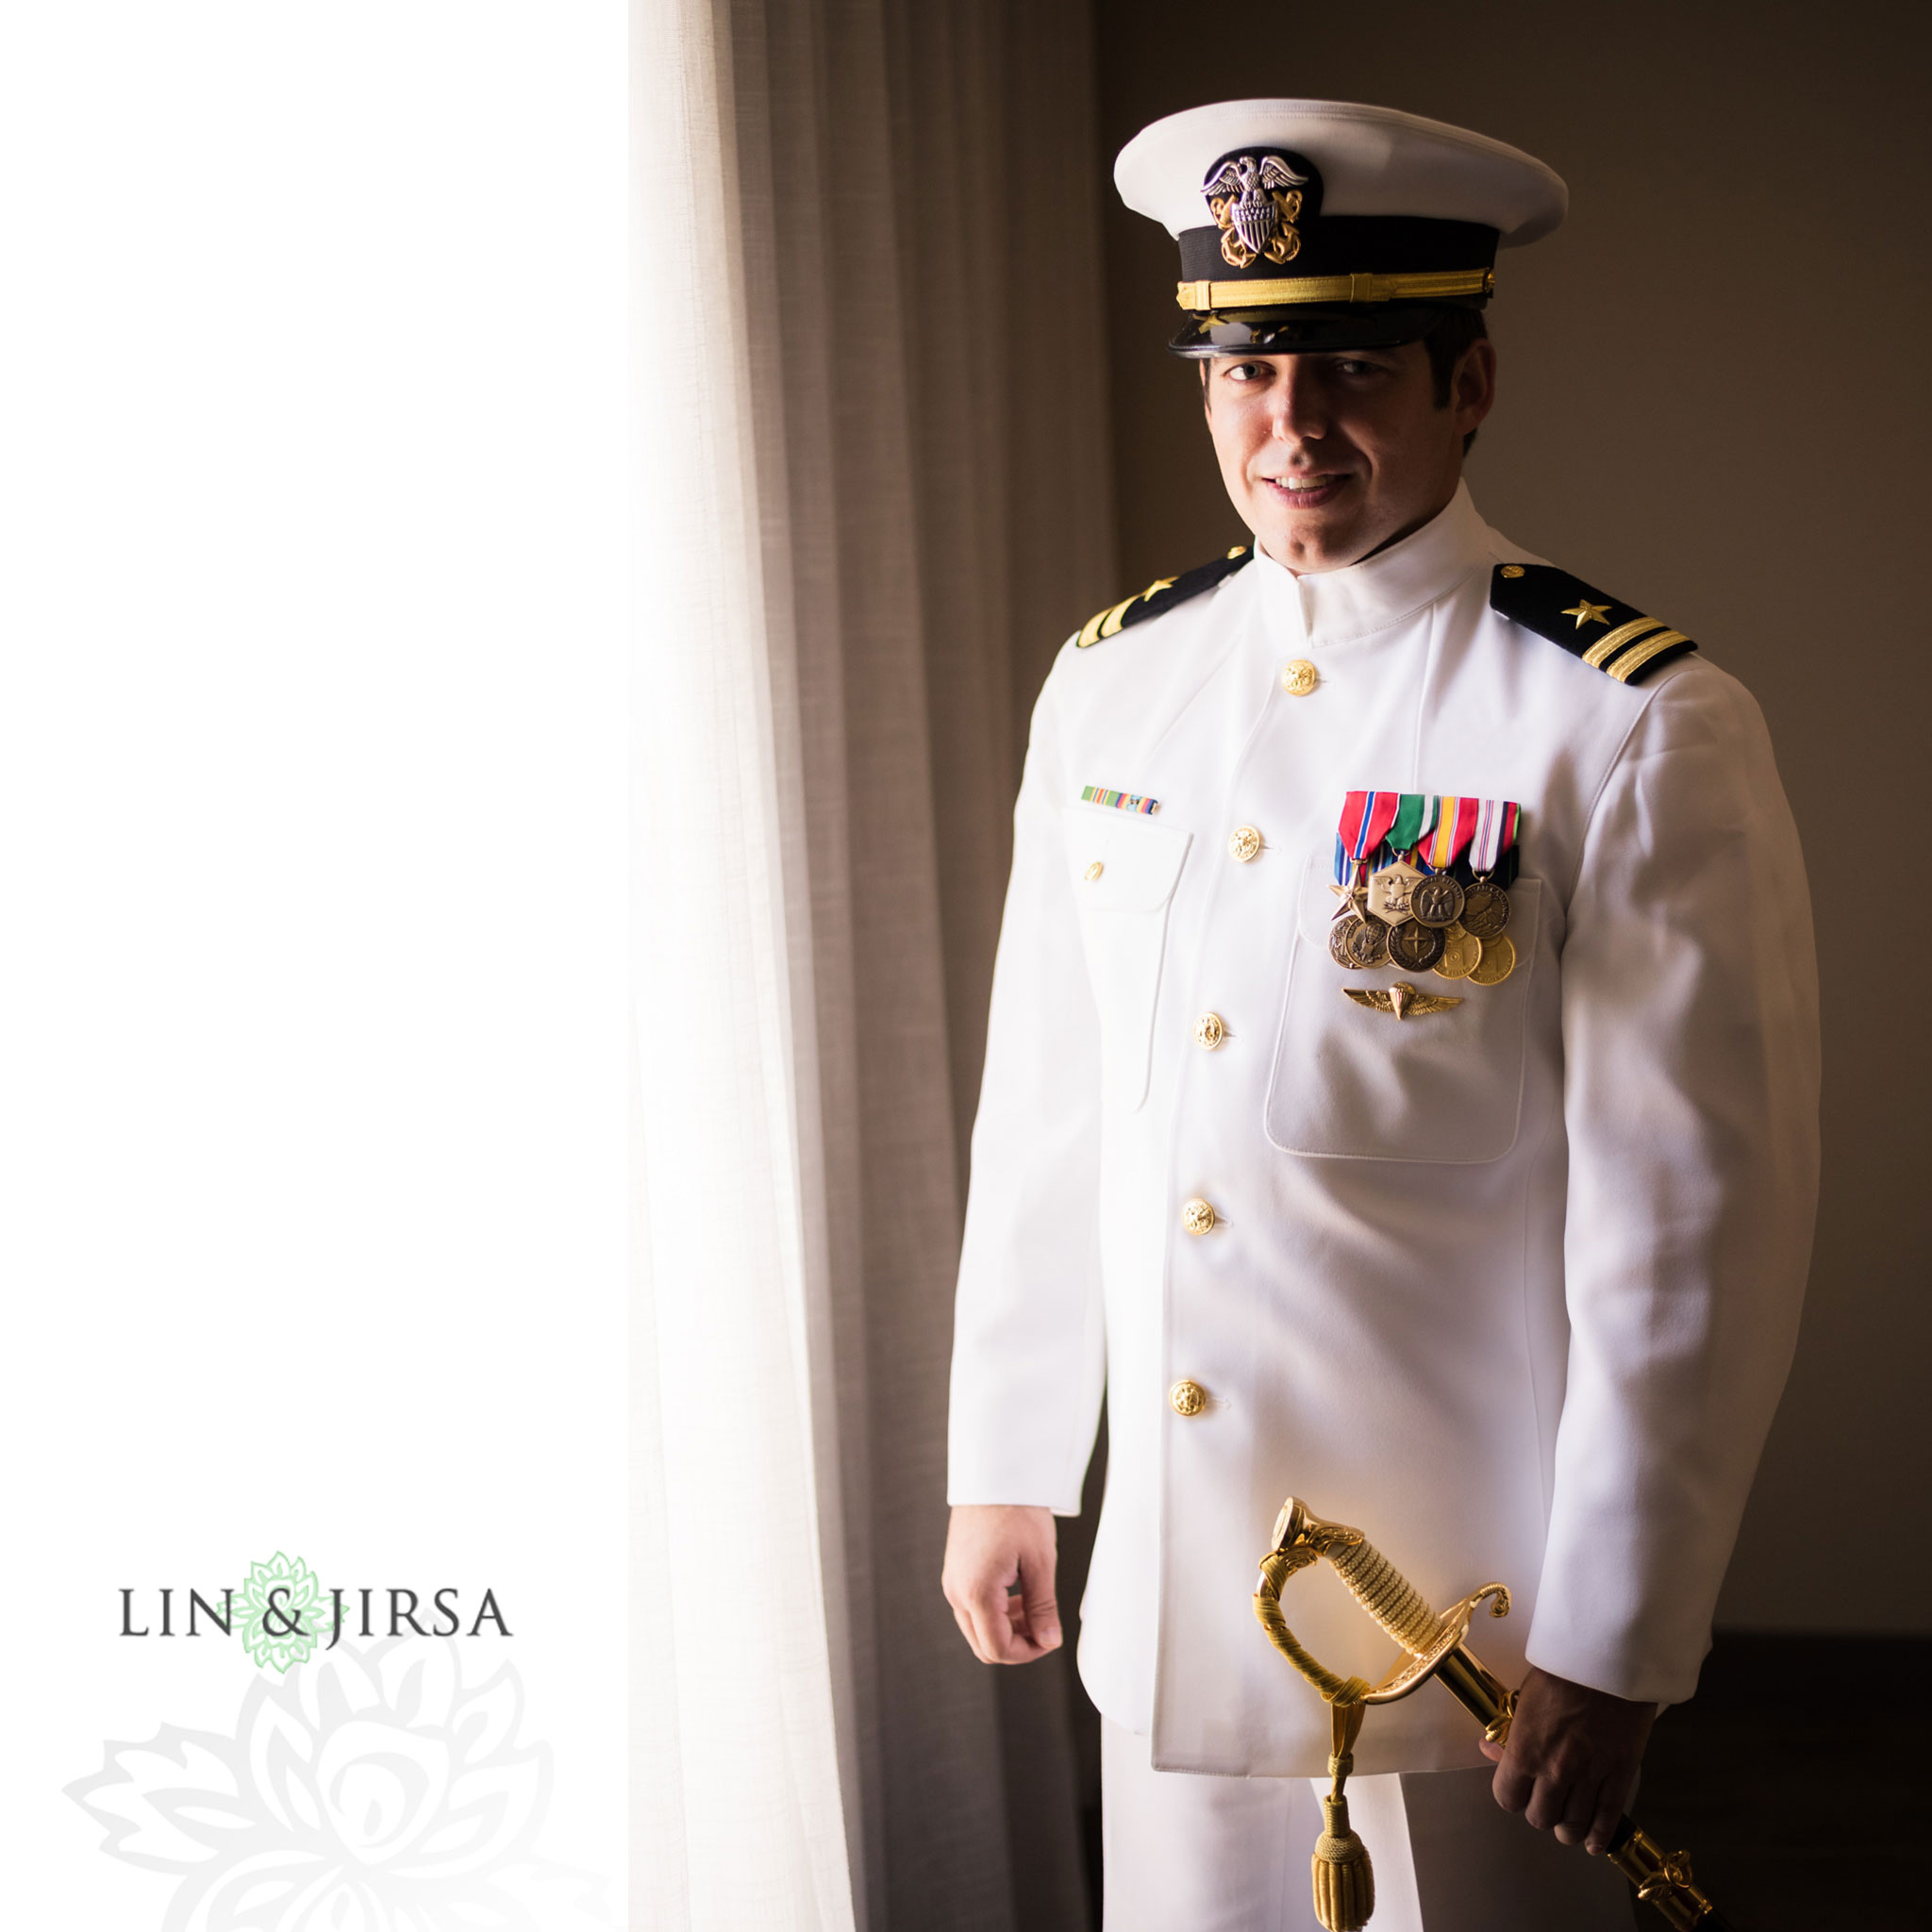 08 newport beach marriott hotel navyseal groom wedding photography 1